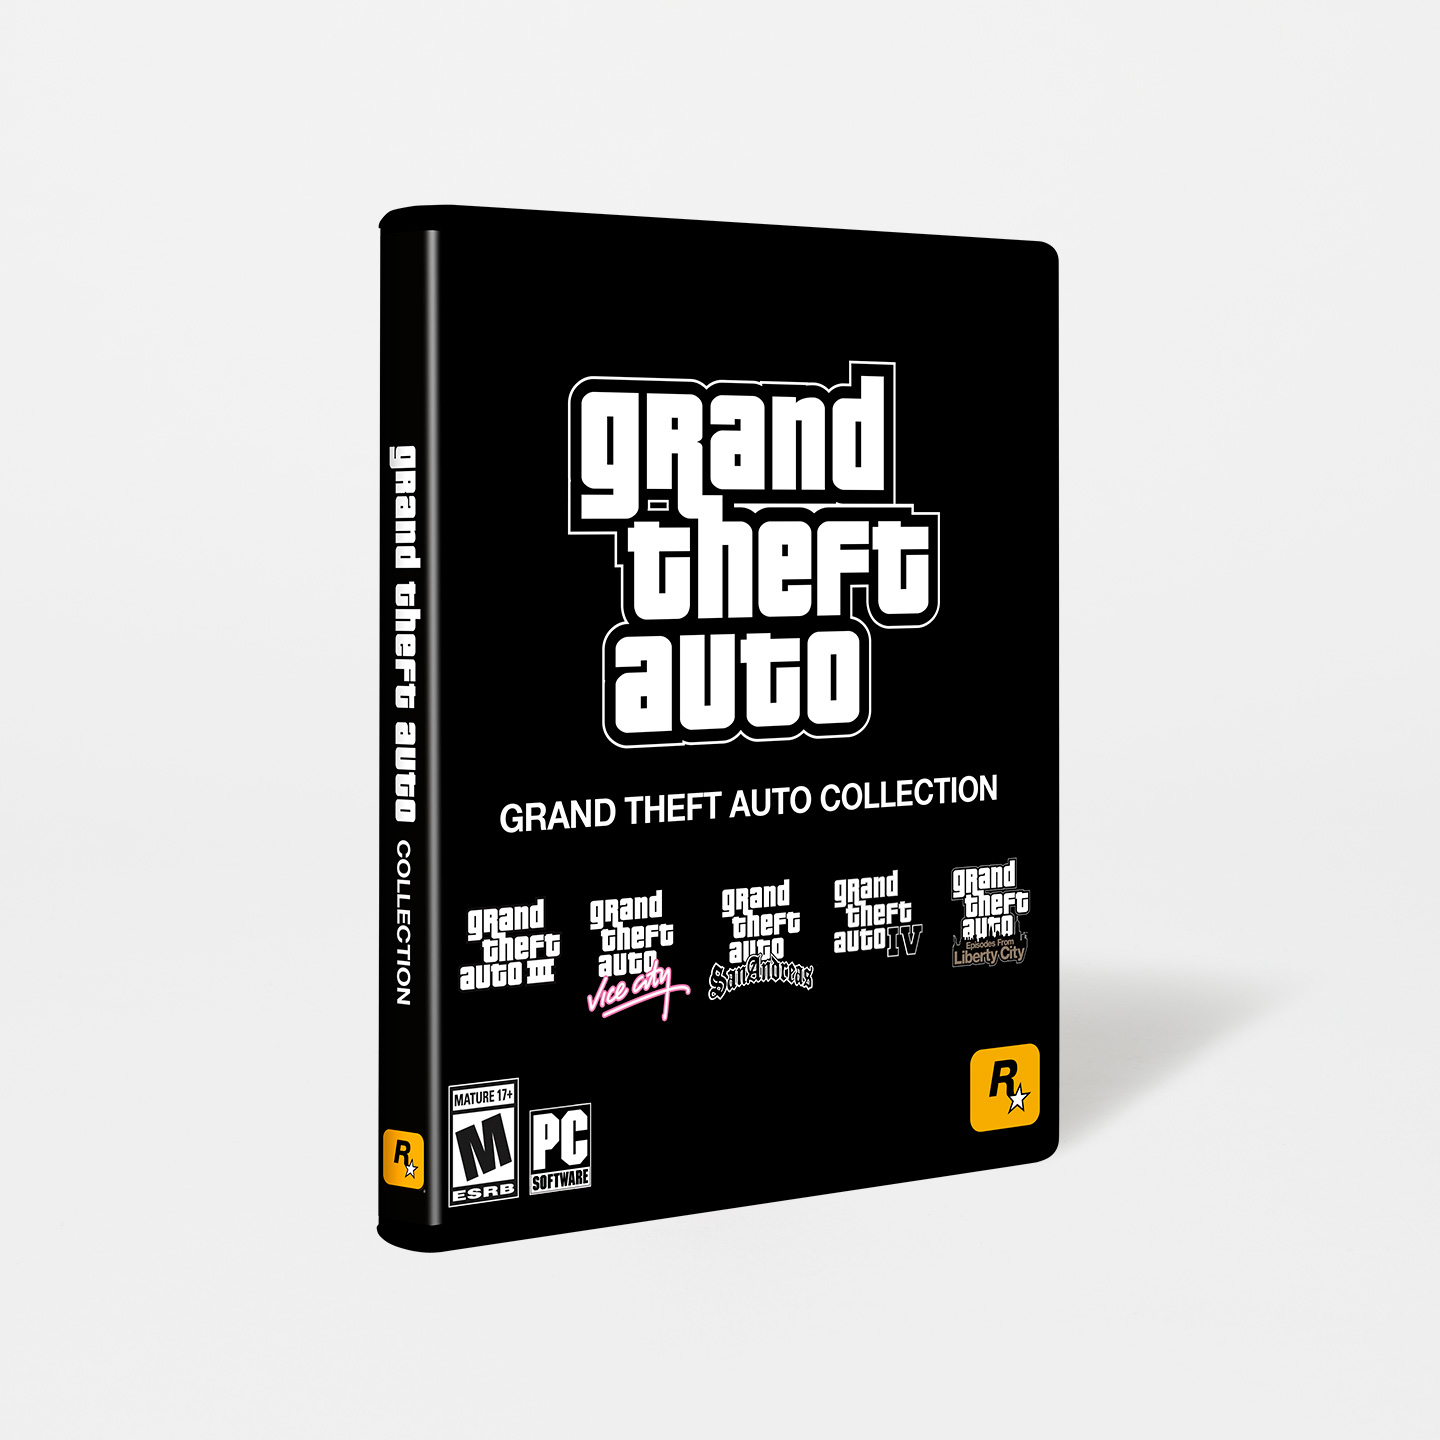 gta episodes from liberty city product key for windows live